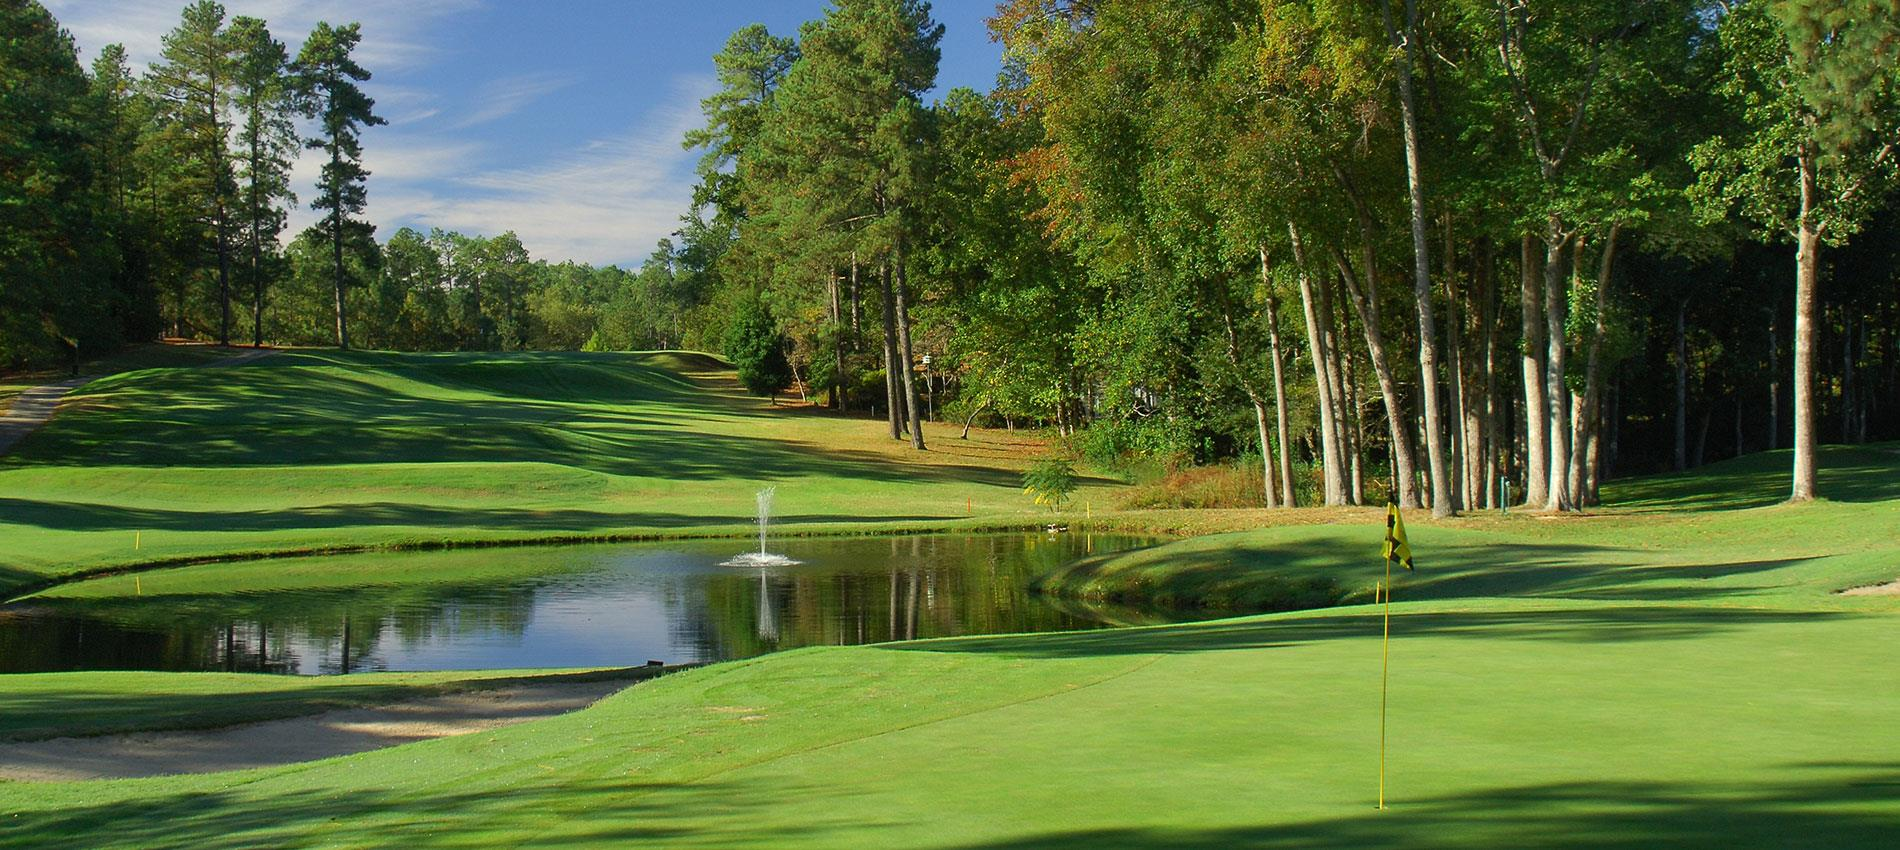 The Holly Inn at Pinehurst 5* - 7 Nights Bed & Breakfast, 5 Rounds (Including Pinehurst No.2)